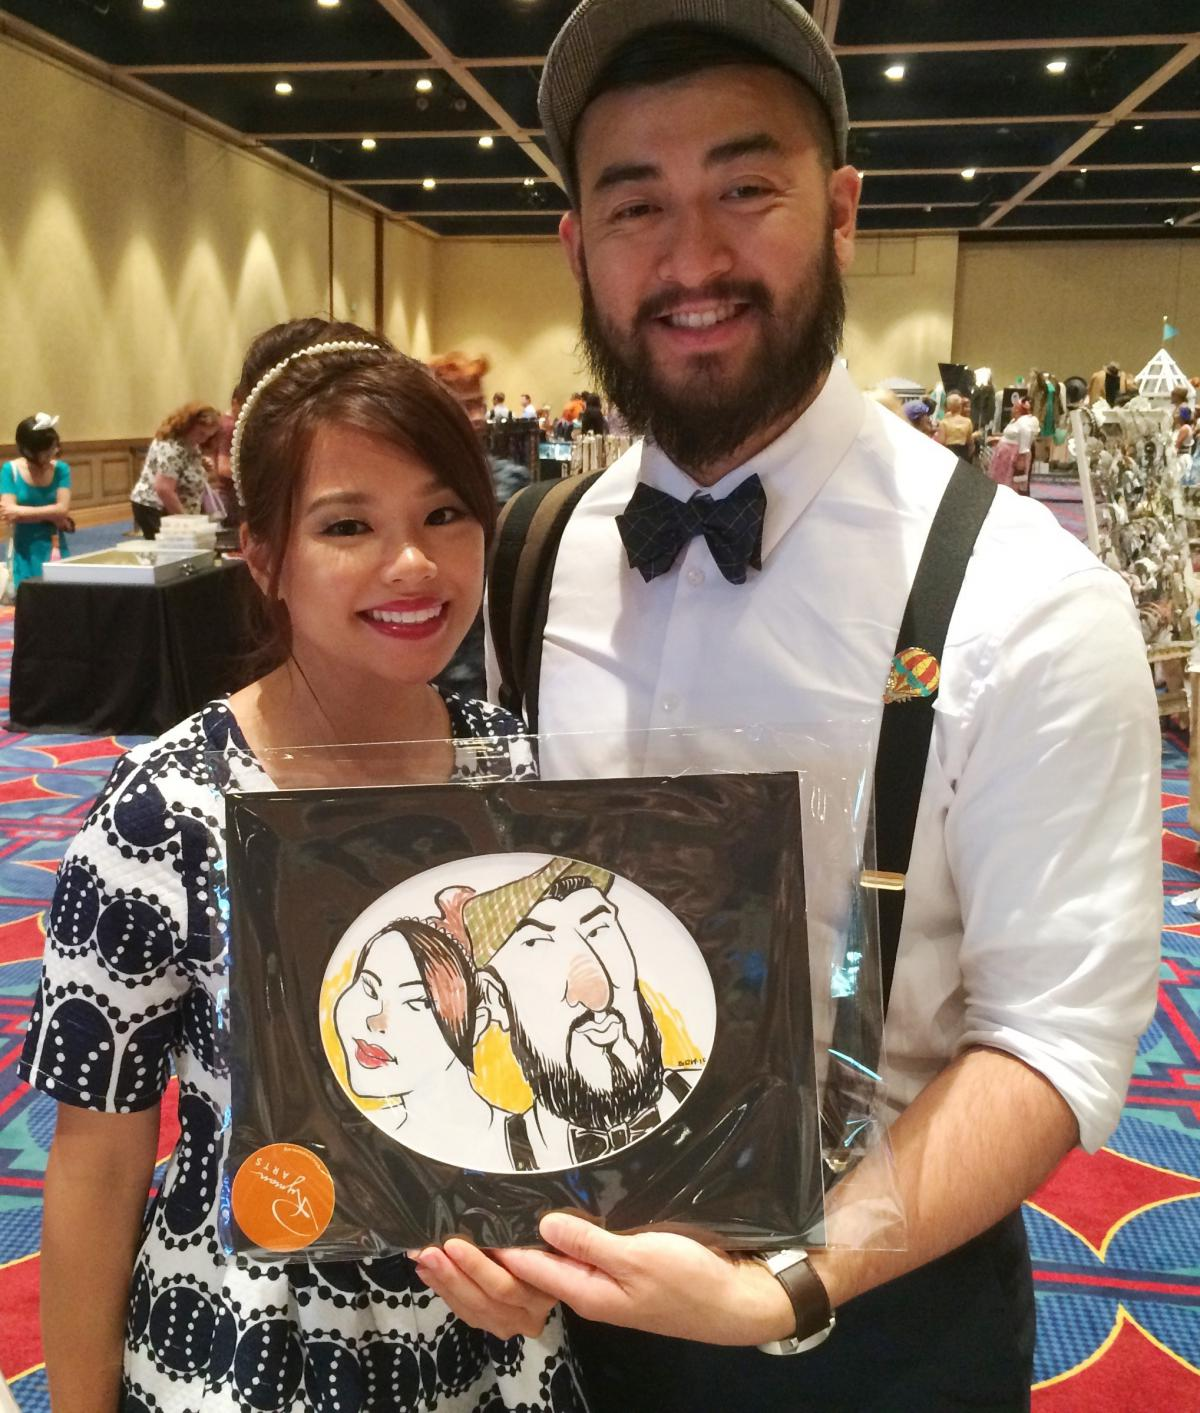 Ryman Arts Sketch Studio at Dapper Day Expo | Ryman Arts